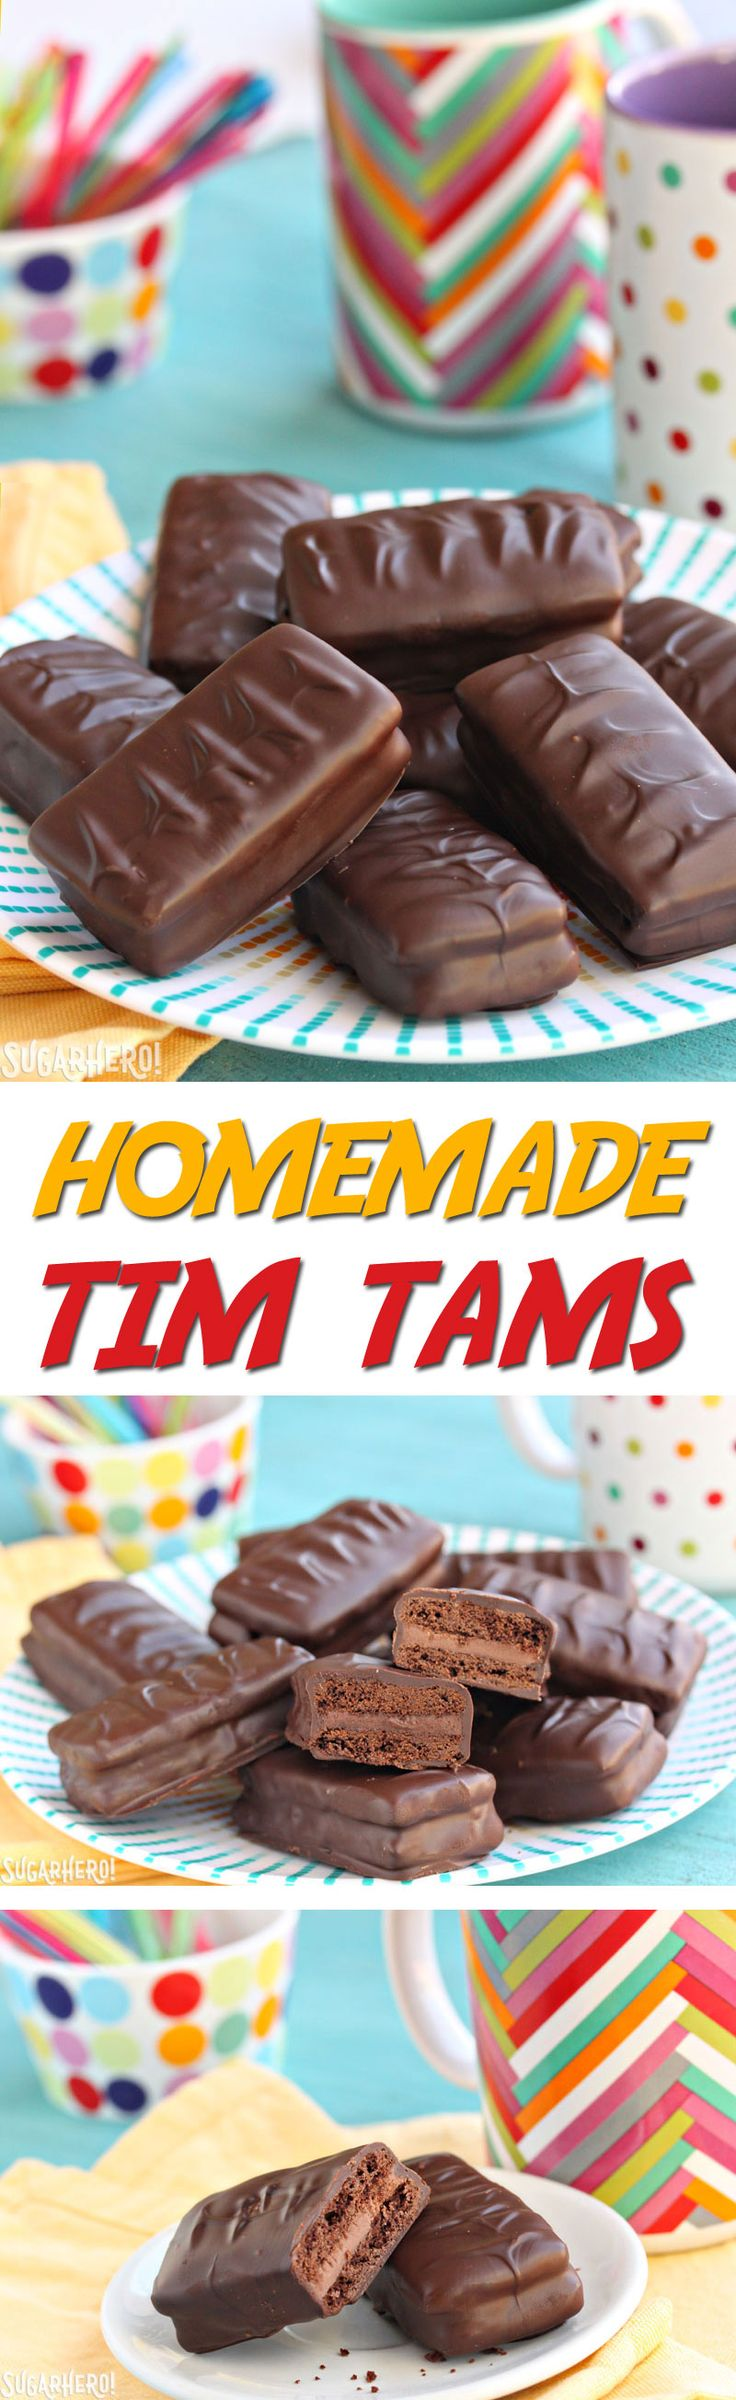 Homemade Tim Tams